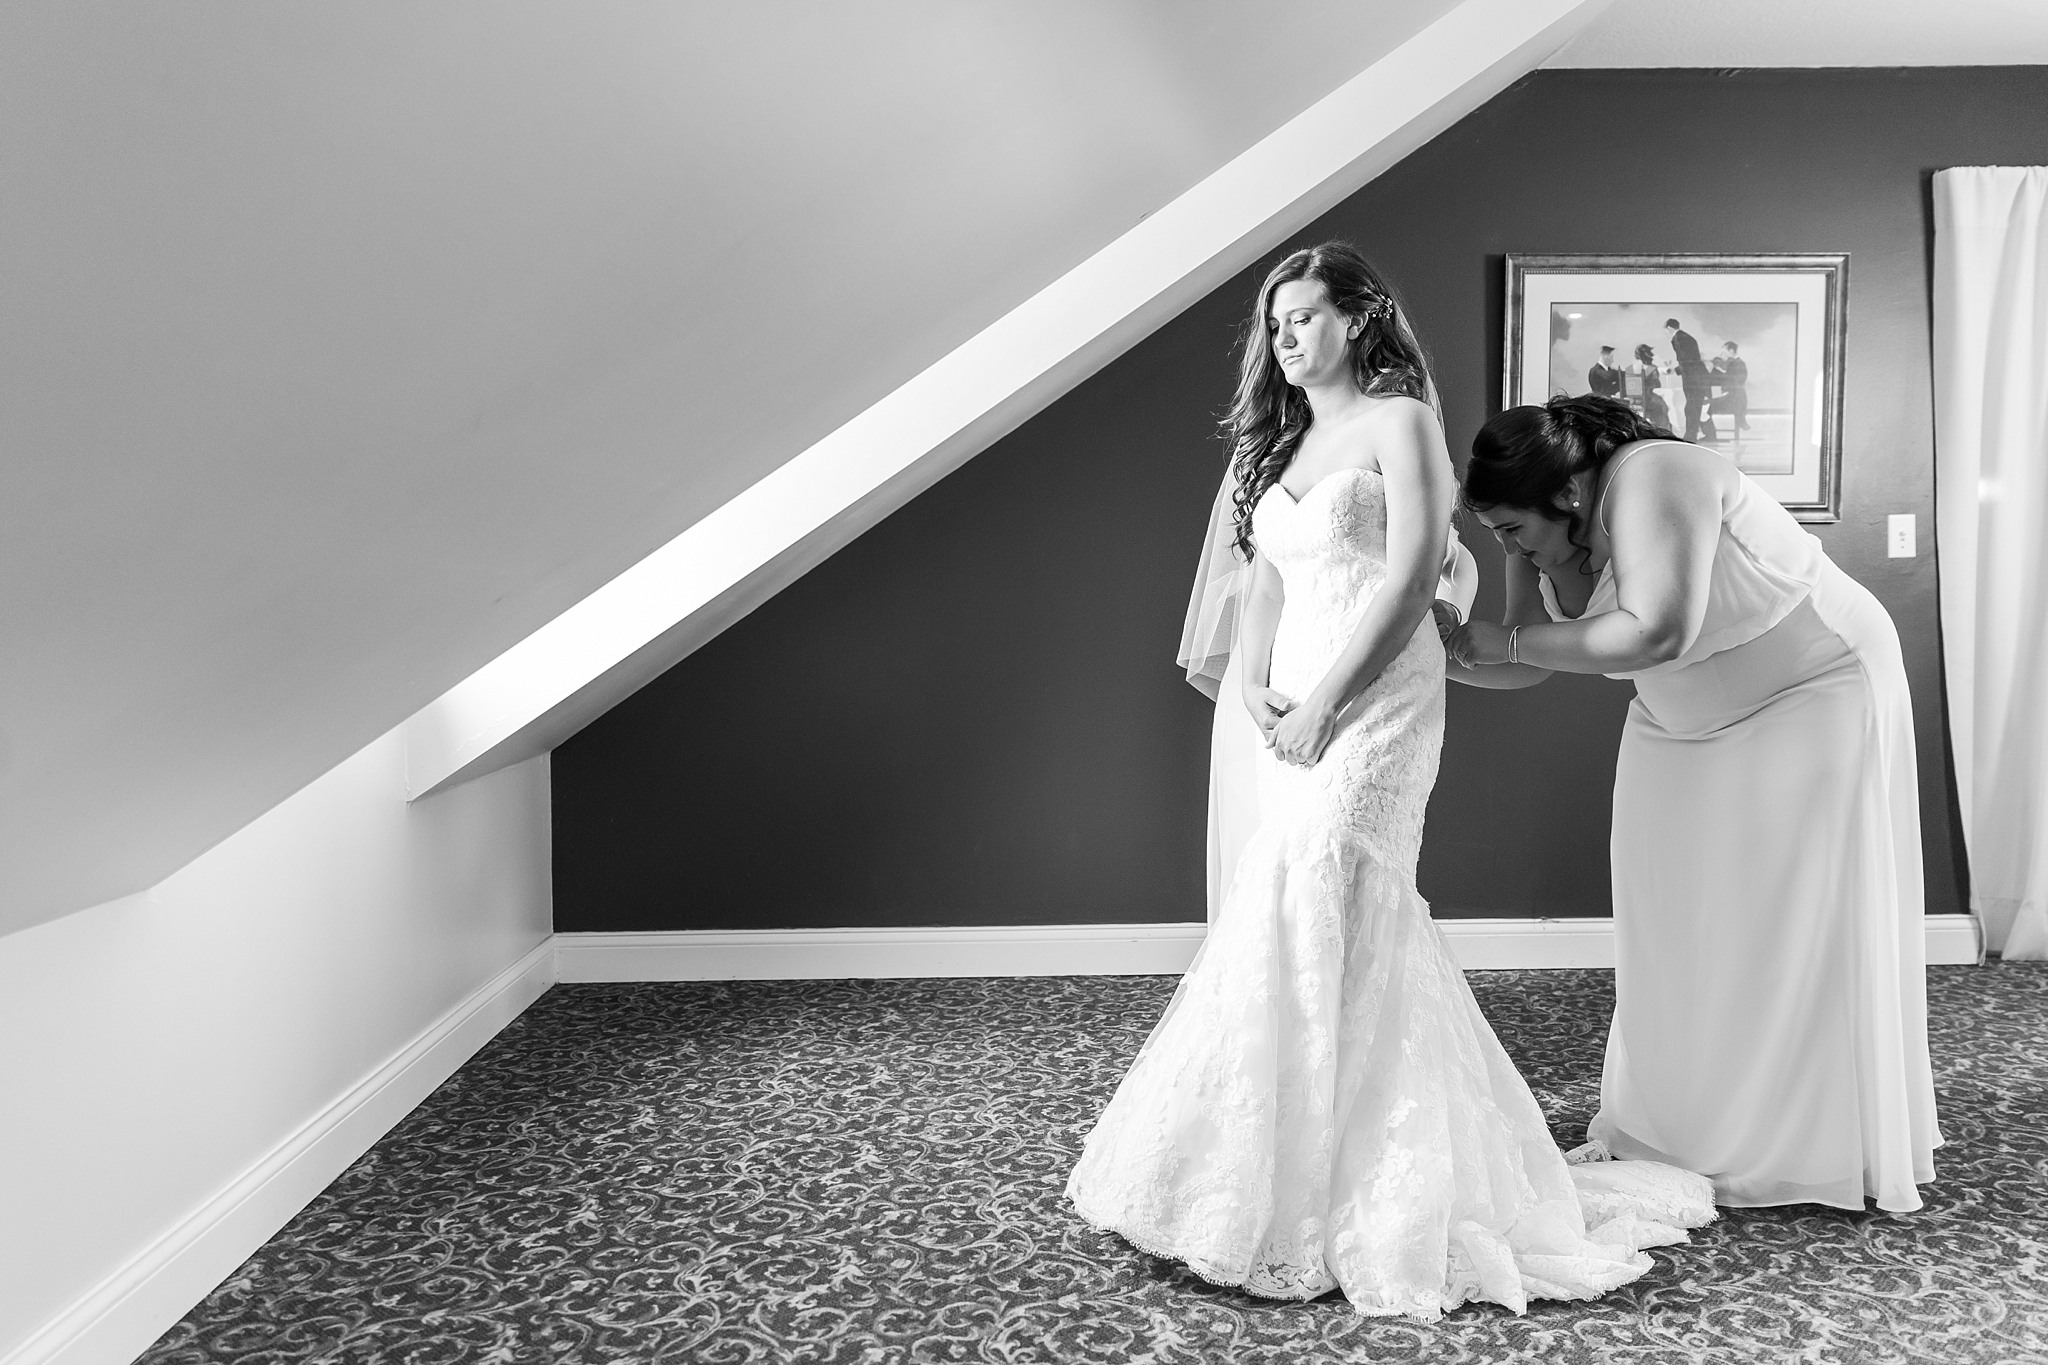 candid-timeless-wedding-photos-at-the-captains-club-in-grand-blanc-michigan-by-courtney-carolyn-photography_0013.jpg